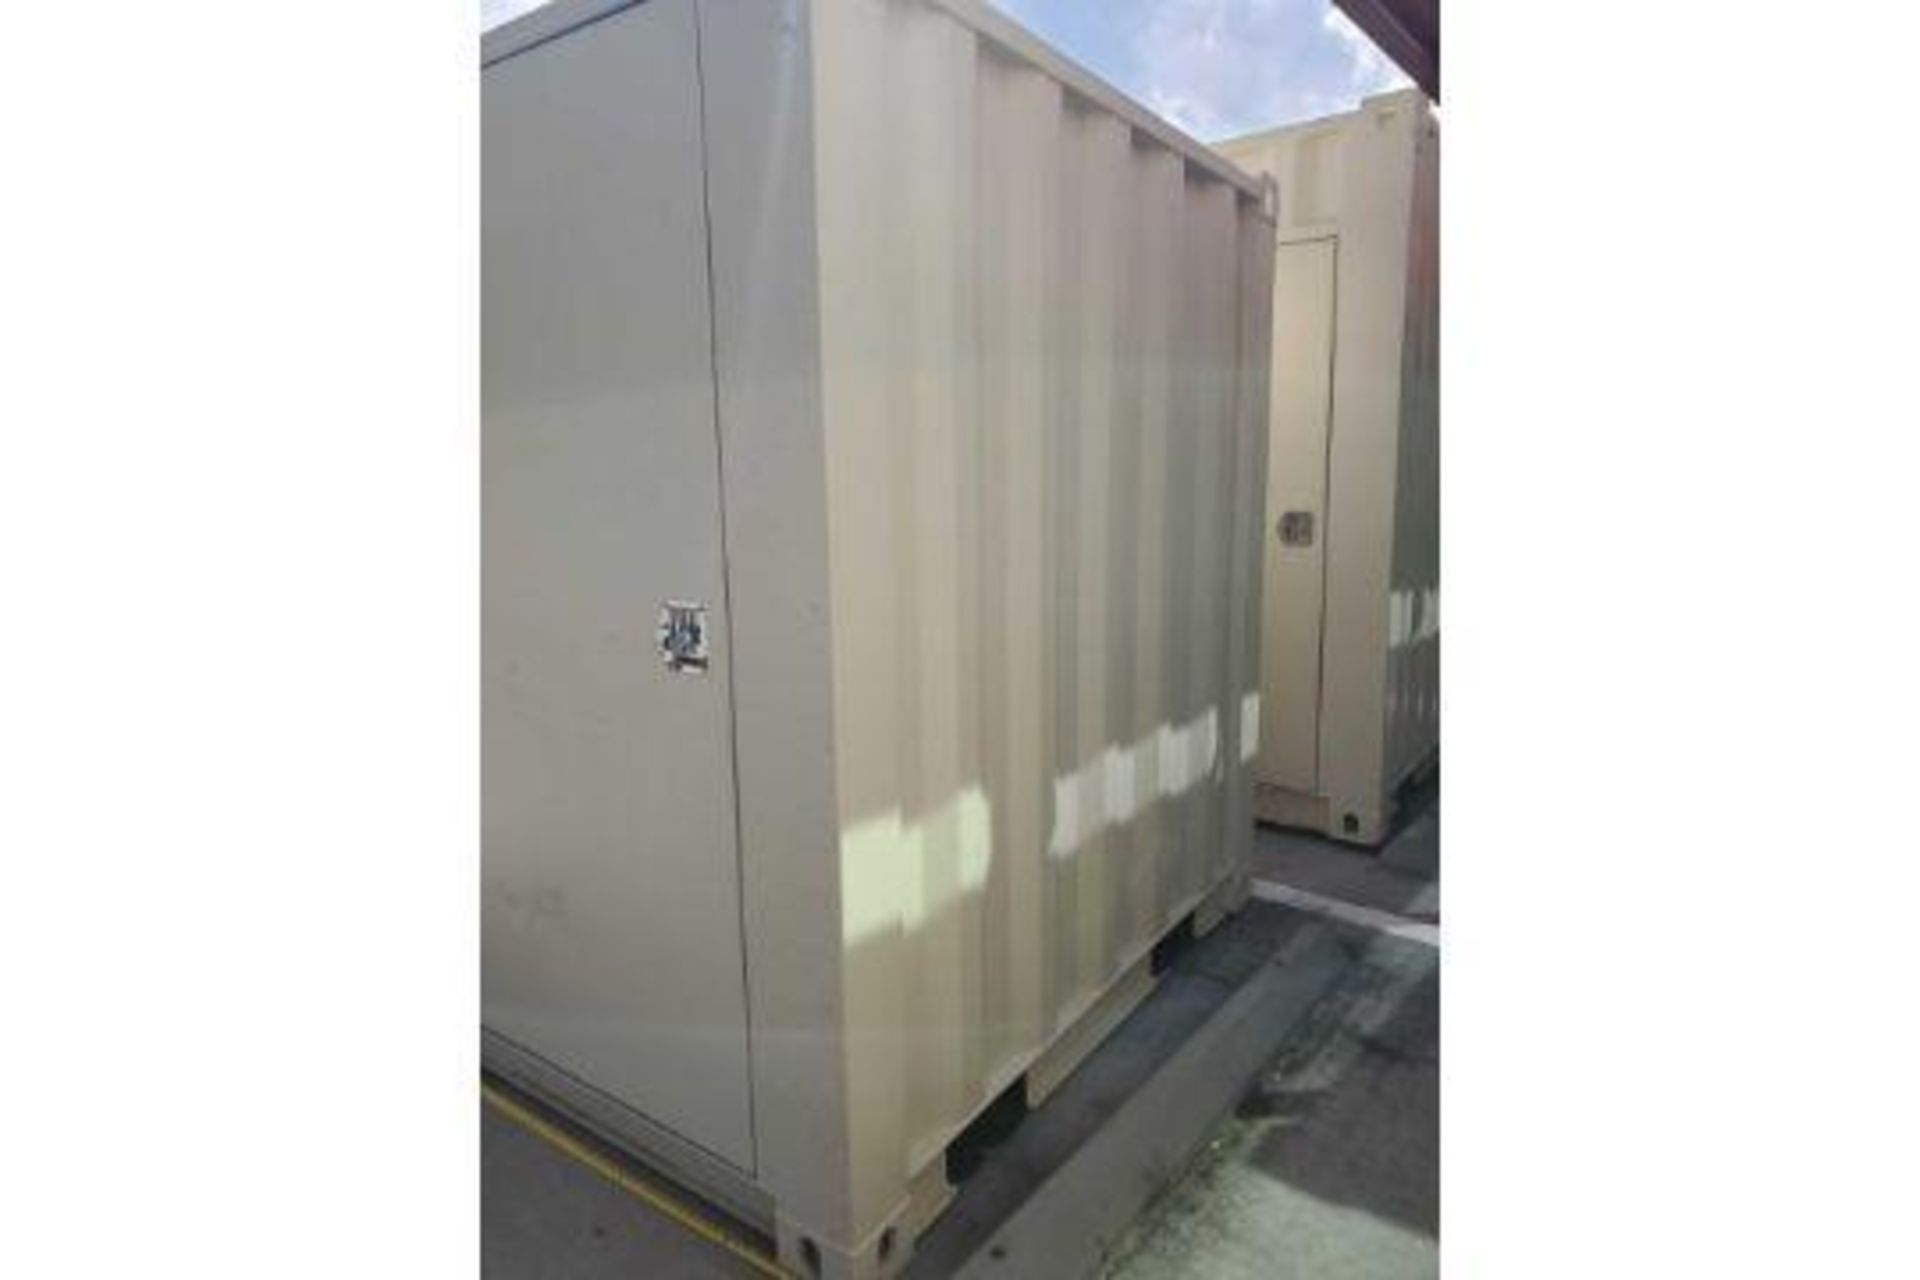 UNUSED 2020 SHIPPING/OFFICE CONTAINER WITH SIDE DOOR, FORK POCKETS, WINDOW - Image 2 of 7